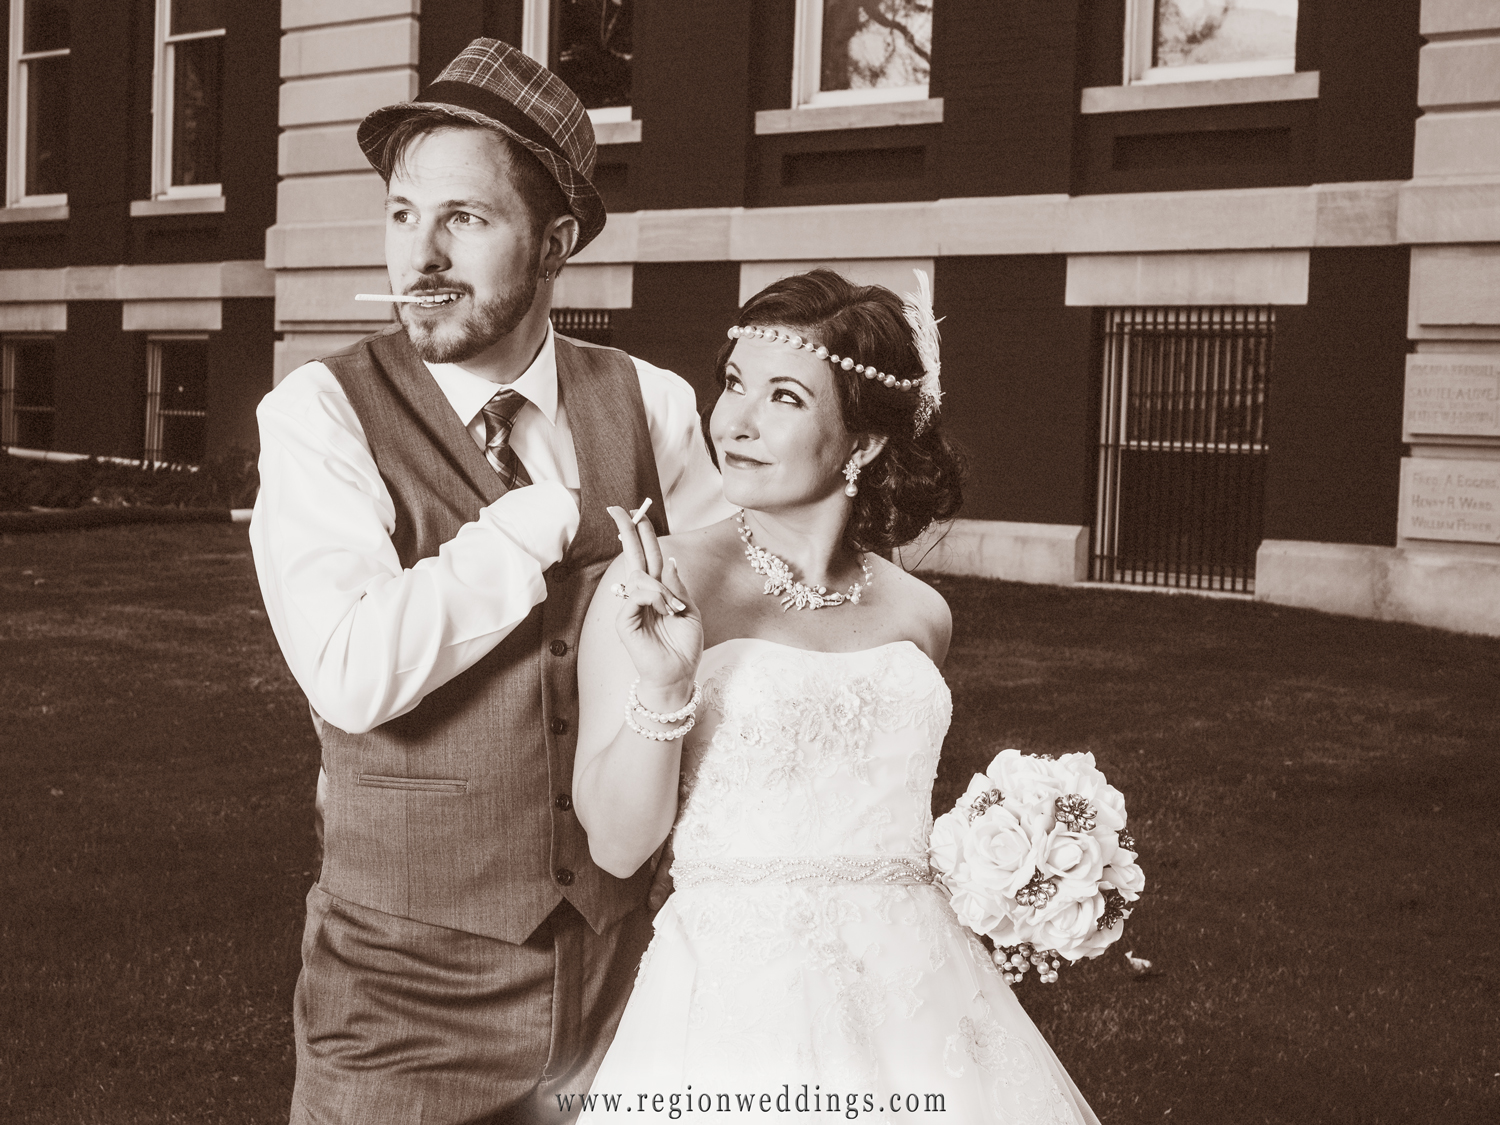 The bride and groom as gangsters on the run at their 1920's themed wedding.